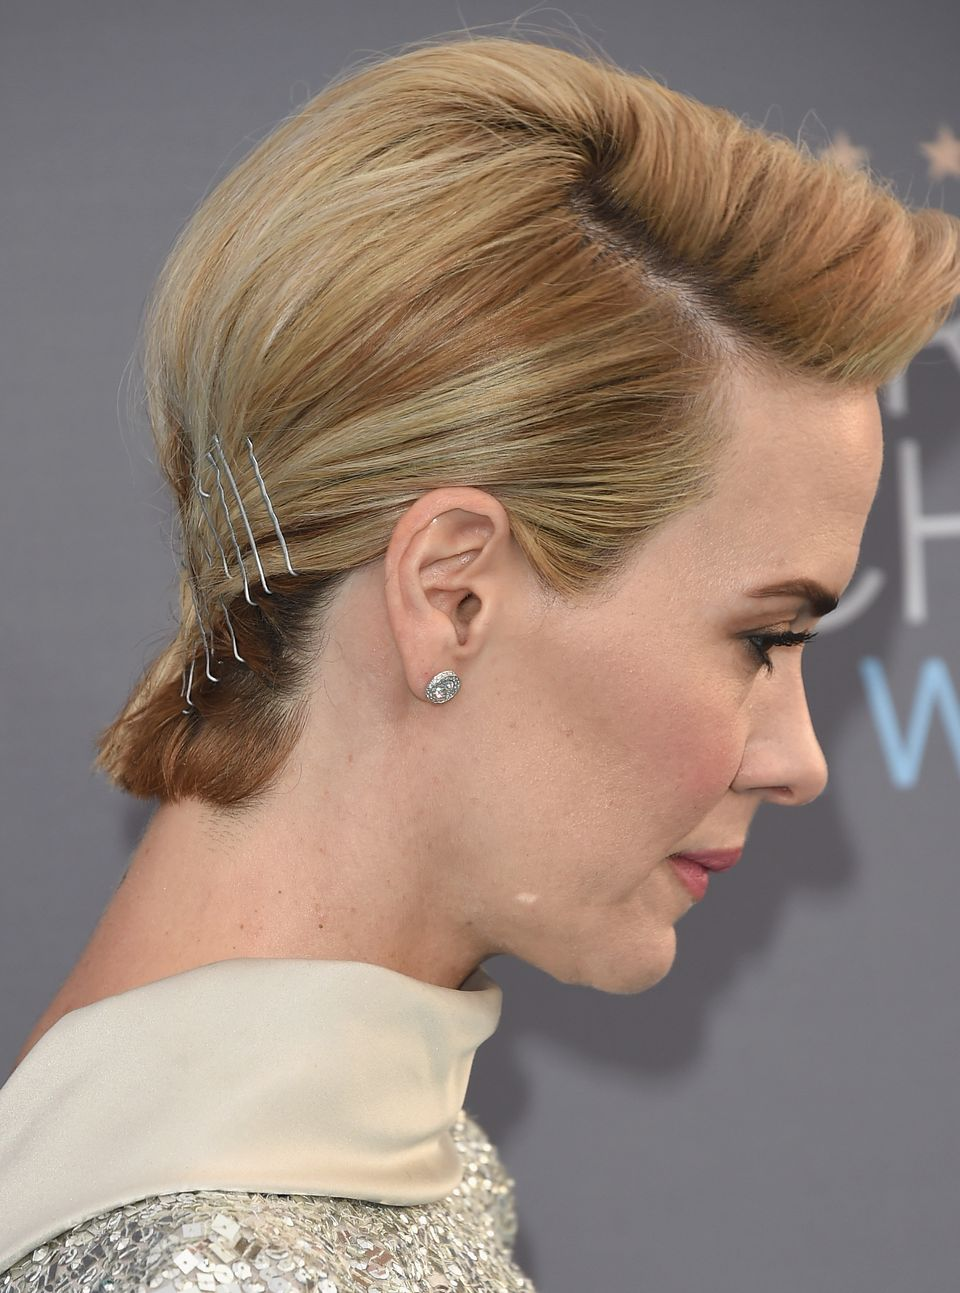 Short Hairstyles You Can Pull Off When Youre Pressed For Time